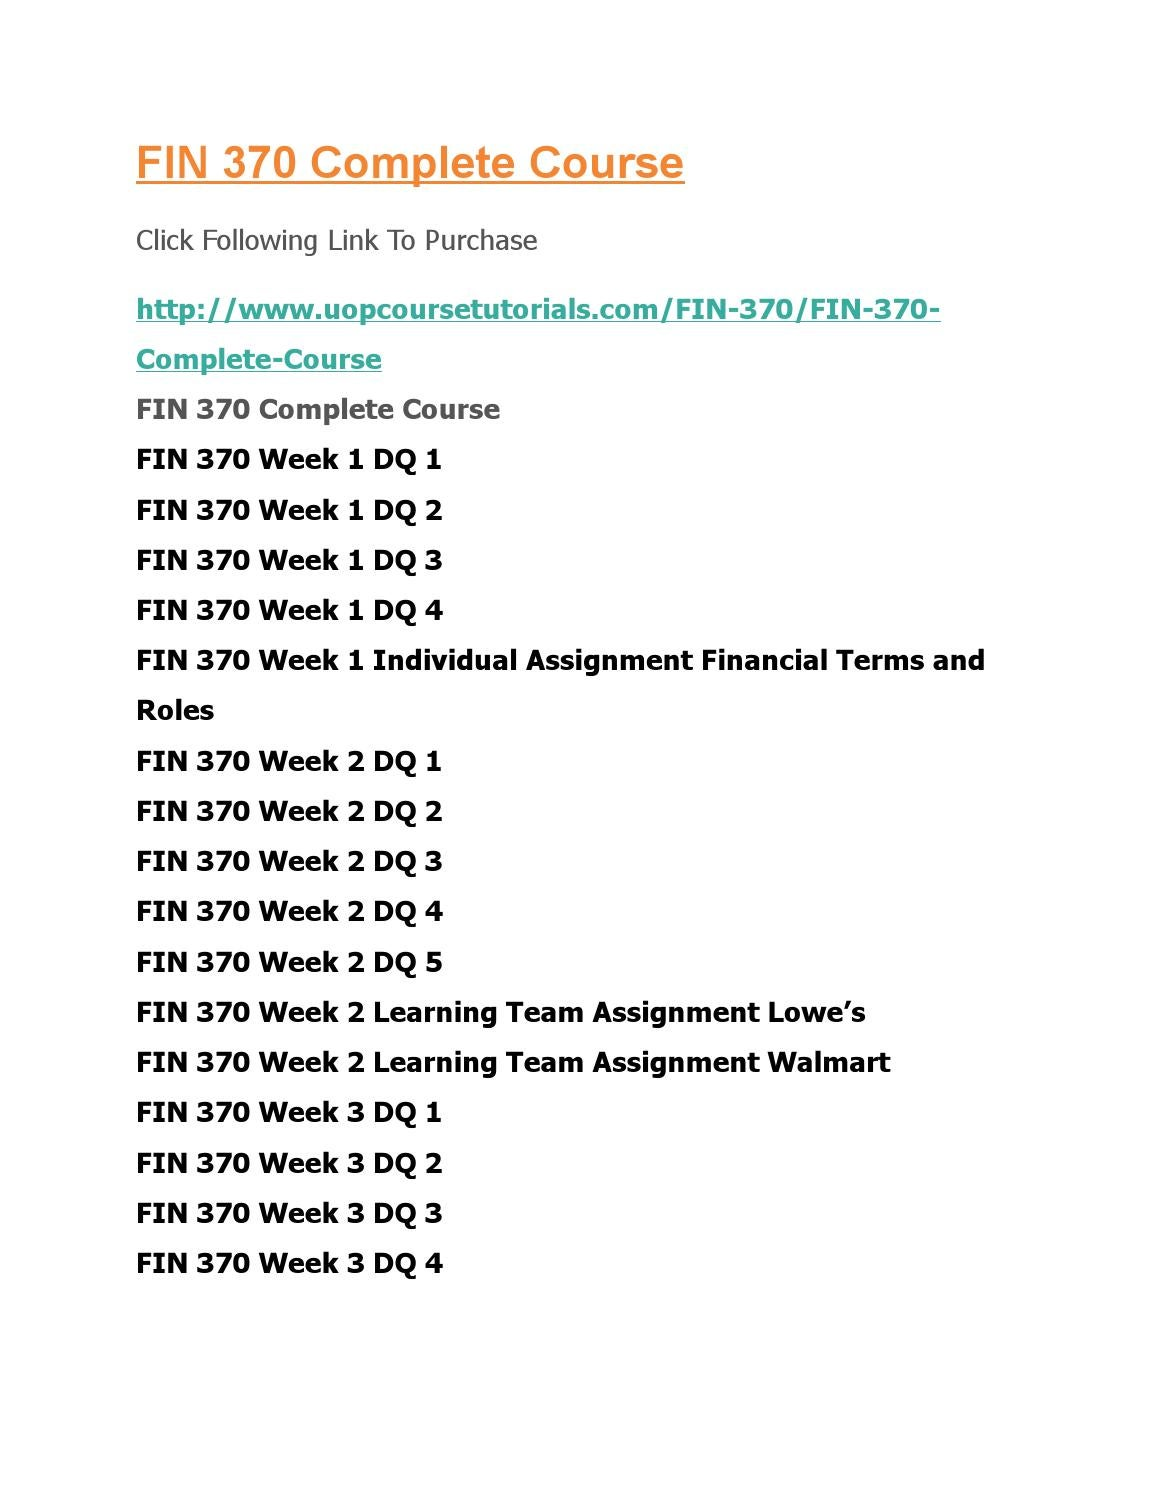 fin 370 financial terms and roles View homework help - fin 370 week 1 individual assignment financial terms and roles from fin 370 fin 370 at university of phoenix financial terms and roles 1) finance finance is considers the.